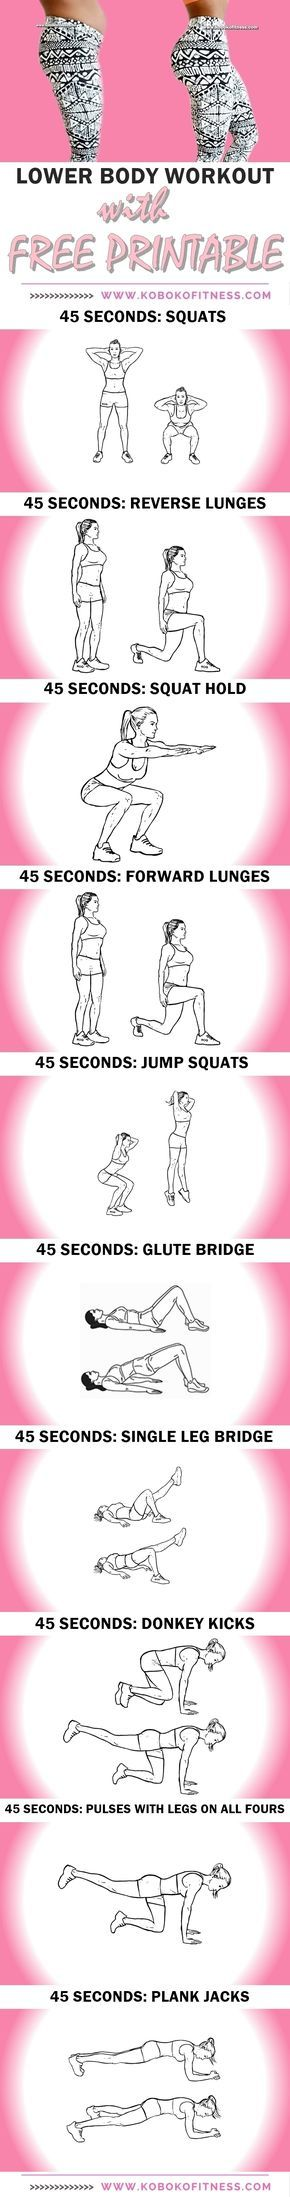 You get the best lowerbody workout. Thigh workout and butt workout all in one and youre done in 10 minutes. AWESOME butt and thigh workout with printable